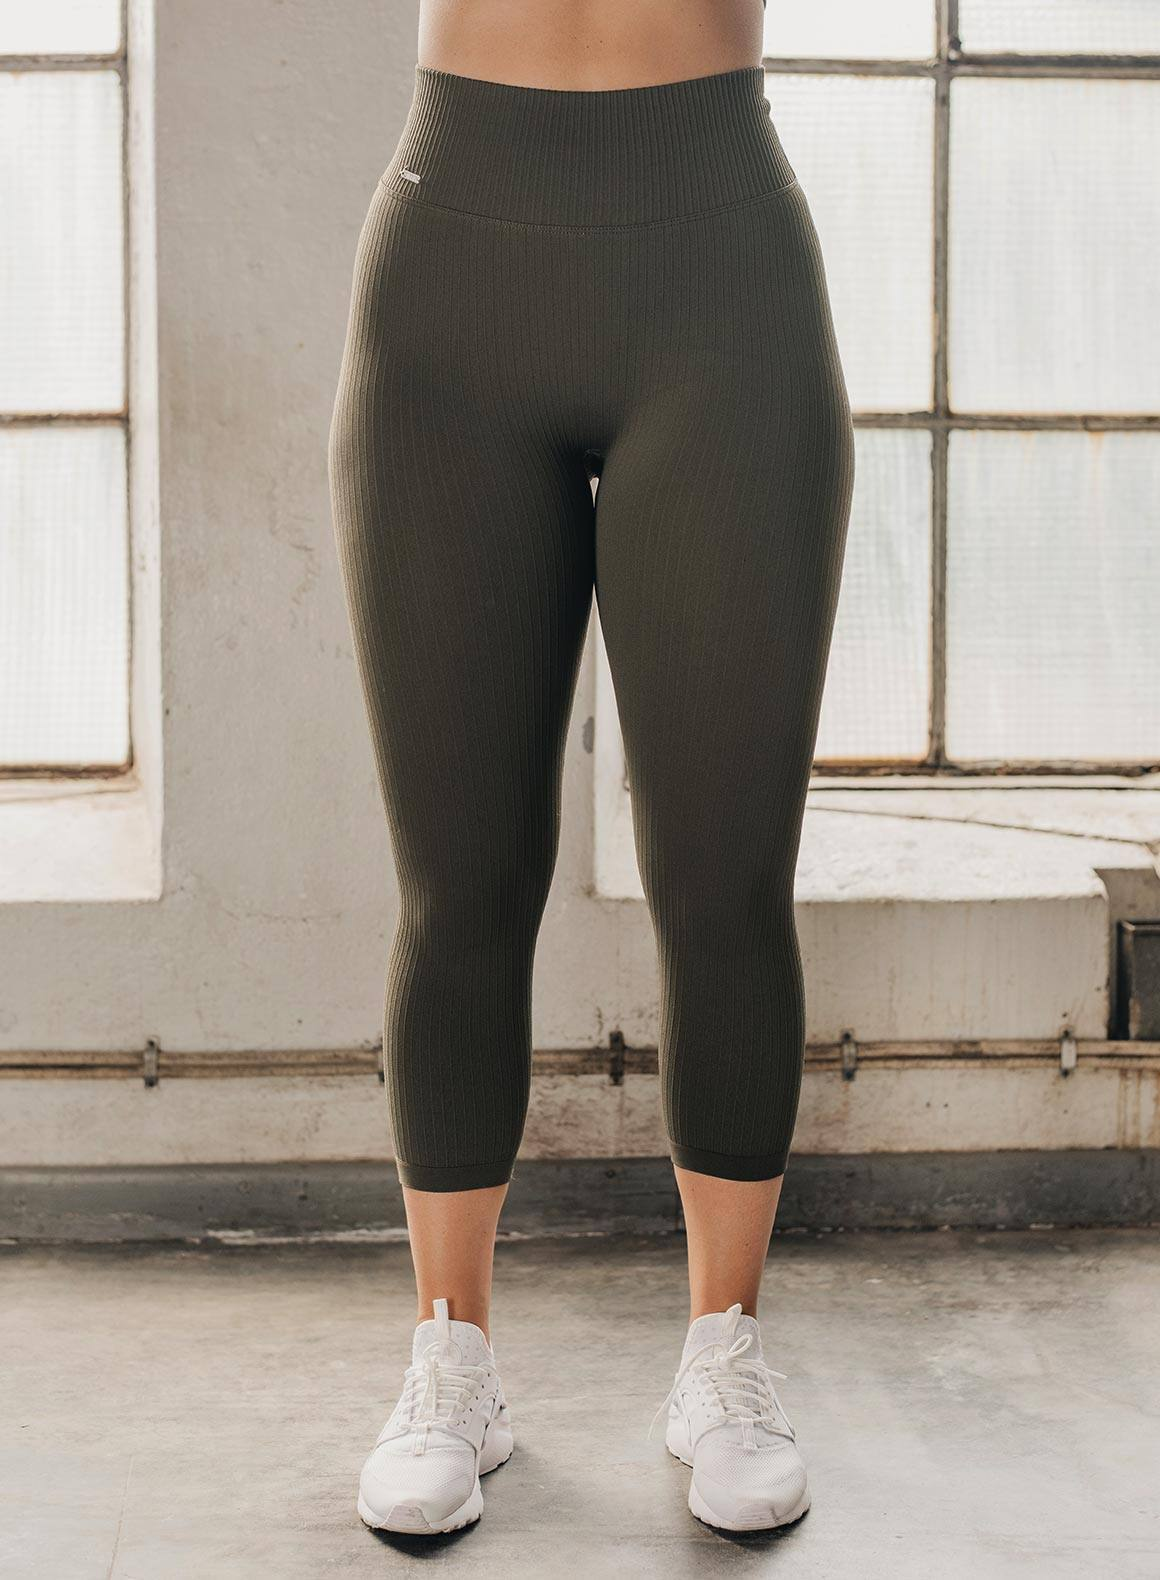 Aim'n Ribbed Seamless Tight 7/8 - Khaki